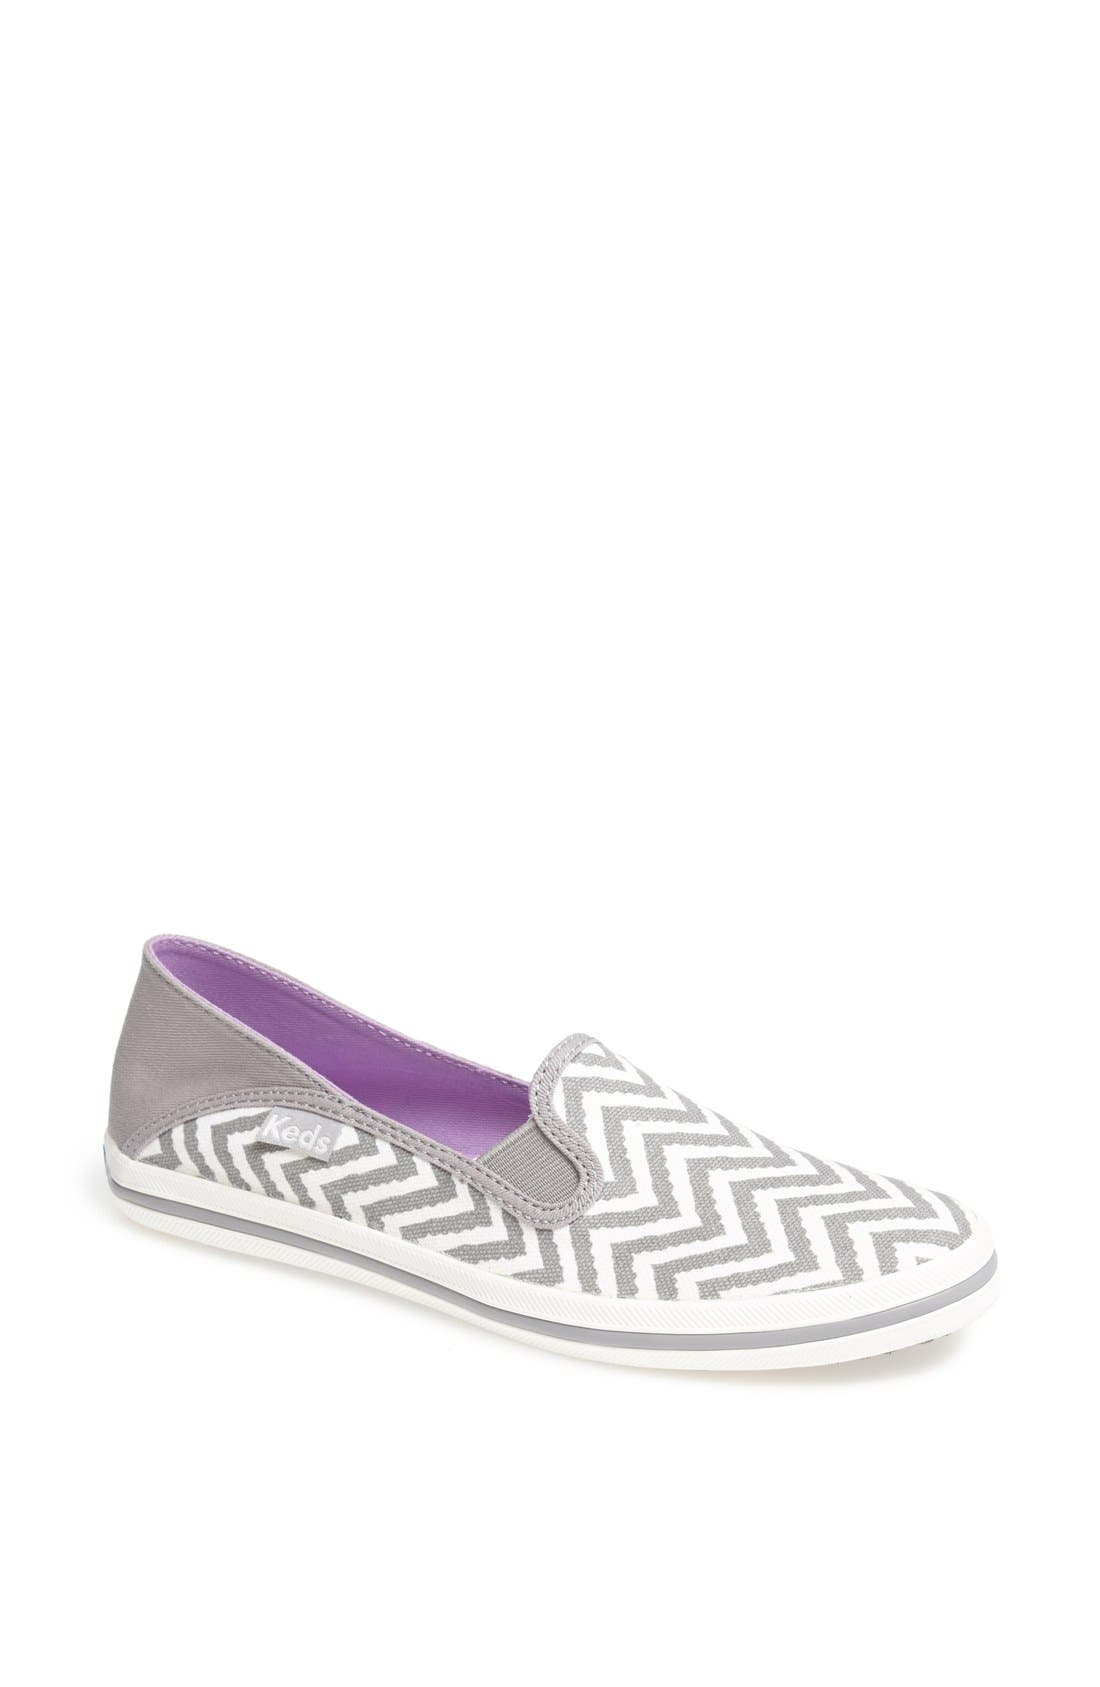 Main Image - Keds® 'Crash Back - Zigzag' Canvas Slip-On Sneaker (Women)